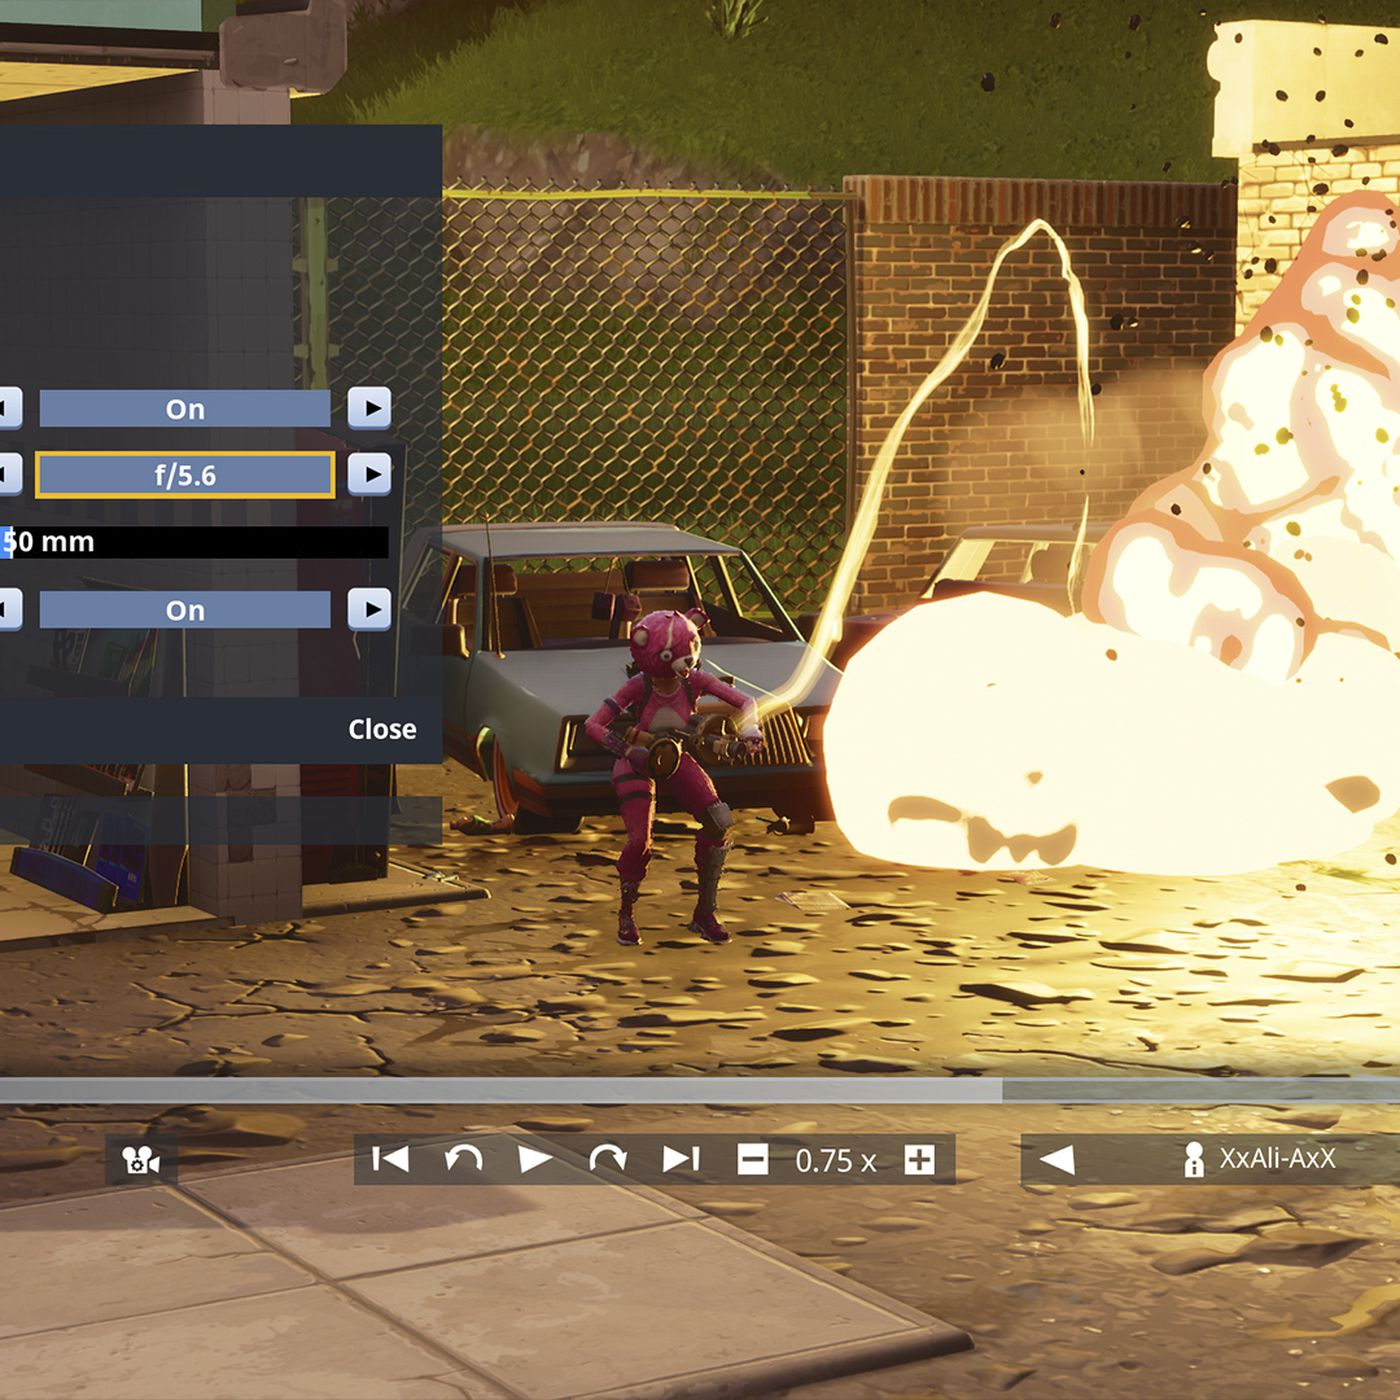 Epics New Replay Editor For Fortnite Is Designed For Youtubers And